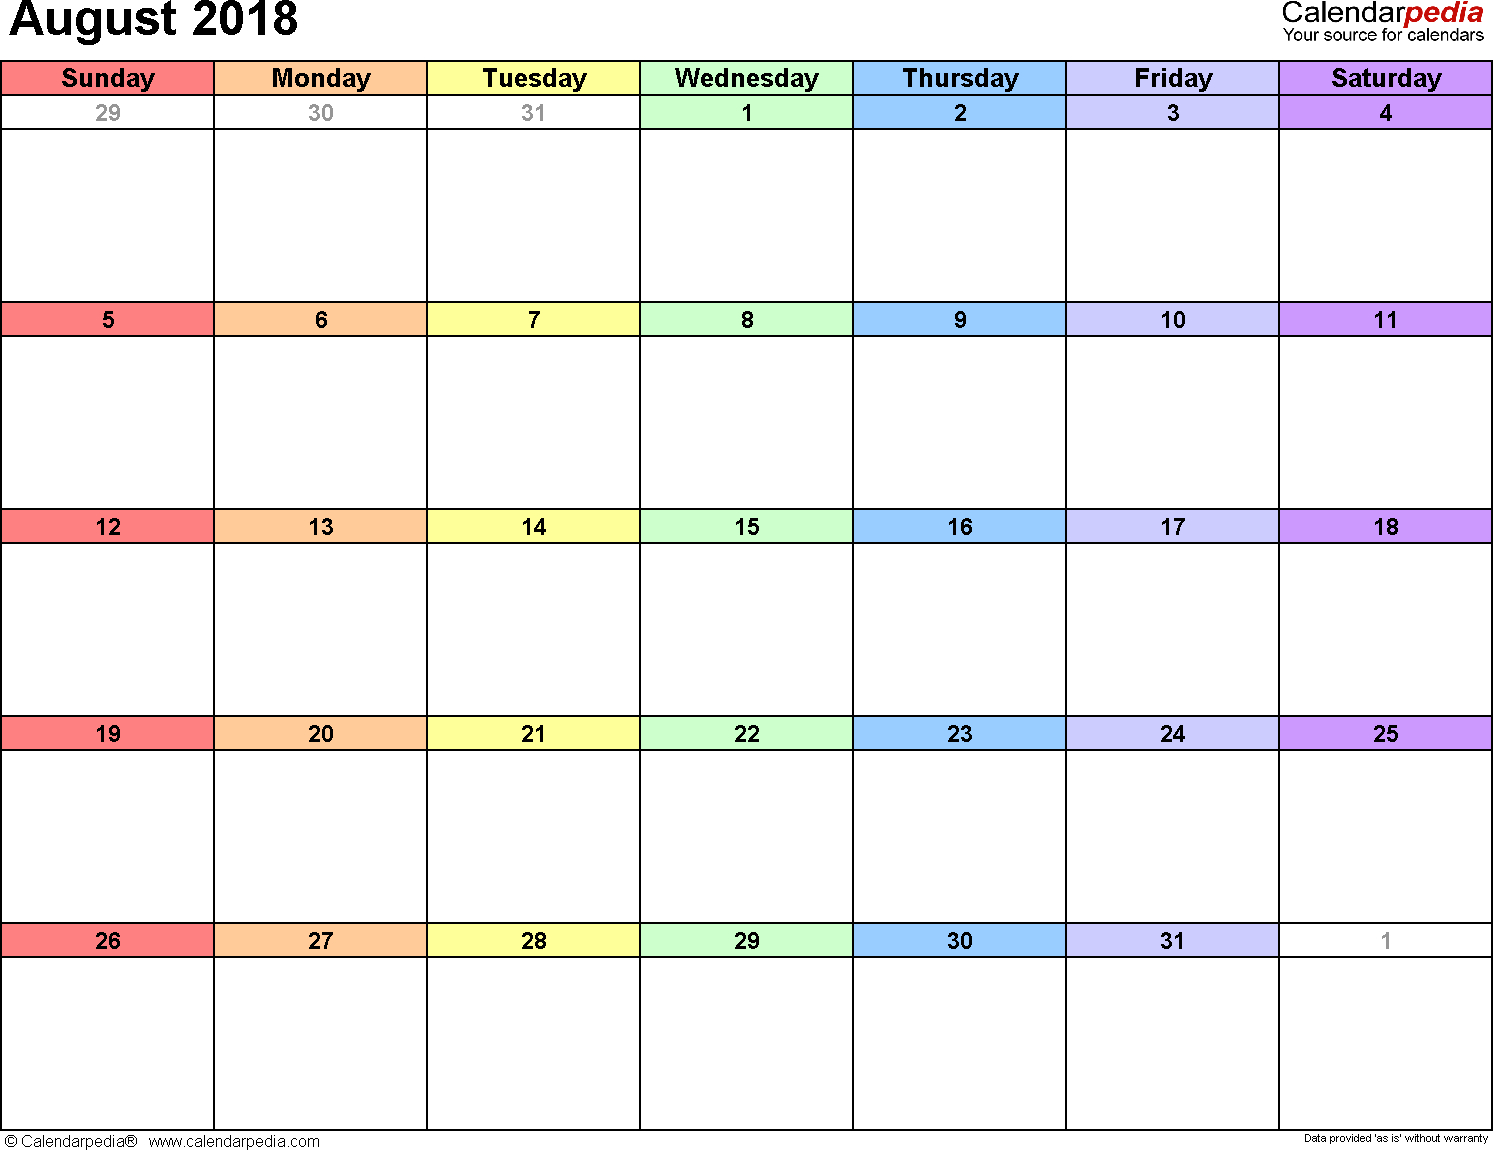 August 2018 Calendars For Word, Excel & Pdf throughout Calendar Template For August